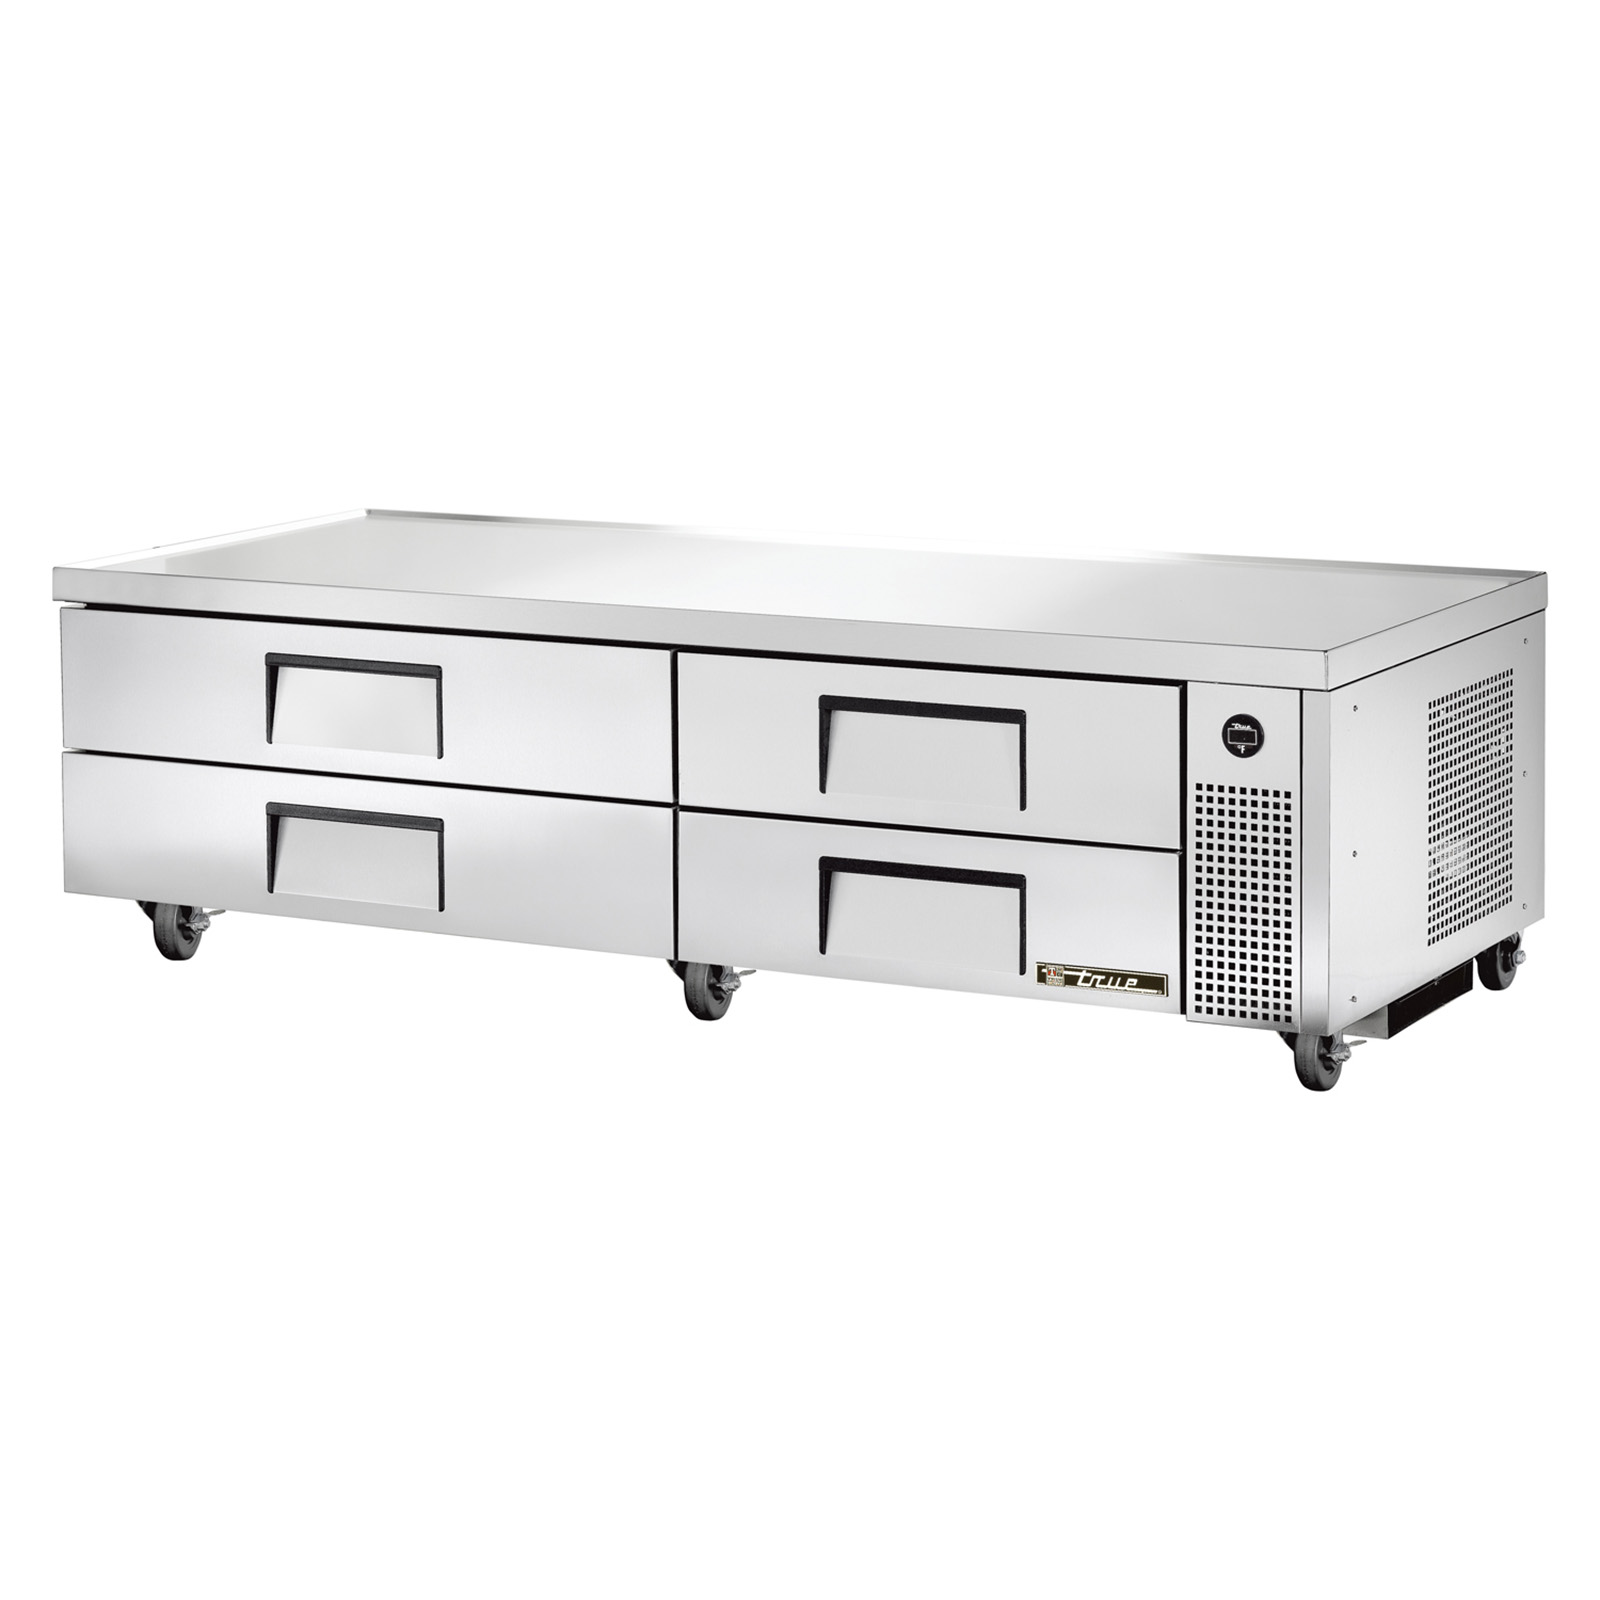 TRCB-82 True - Refrigerated Chef Base 82-3/8